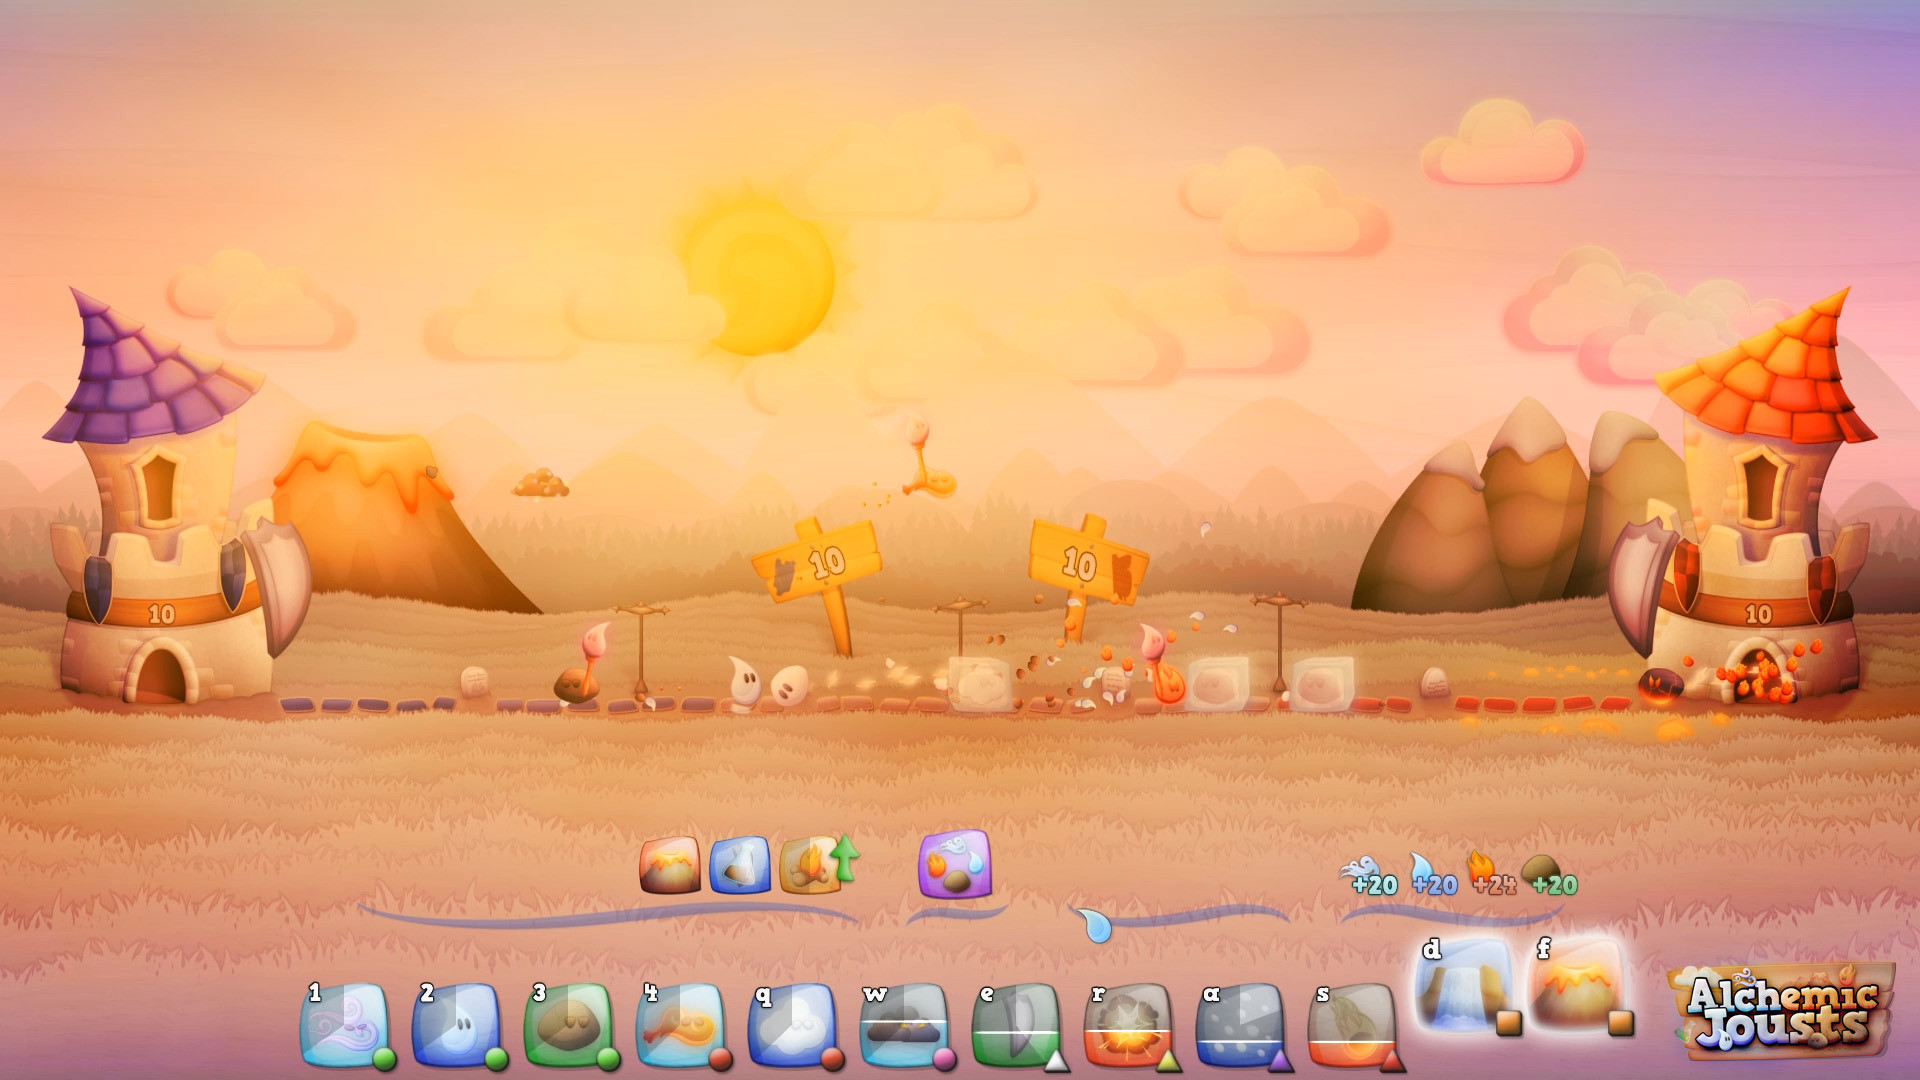 Alchemic Jousts Screenshot 1